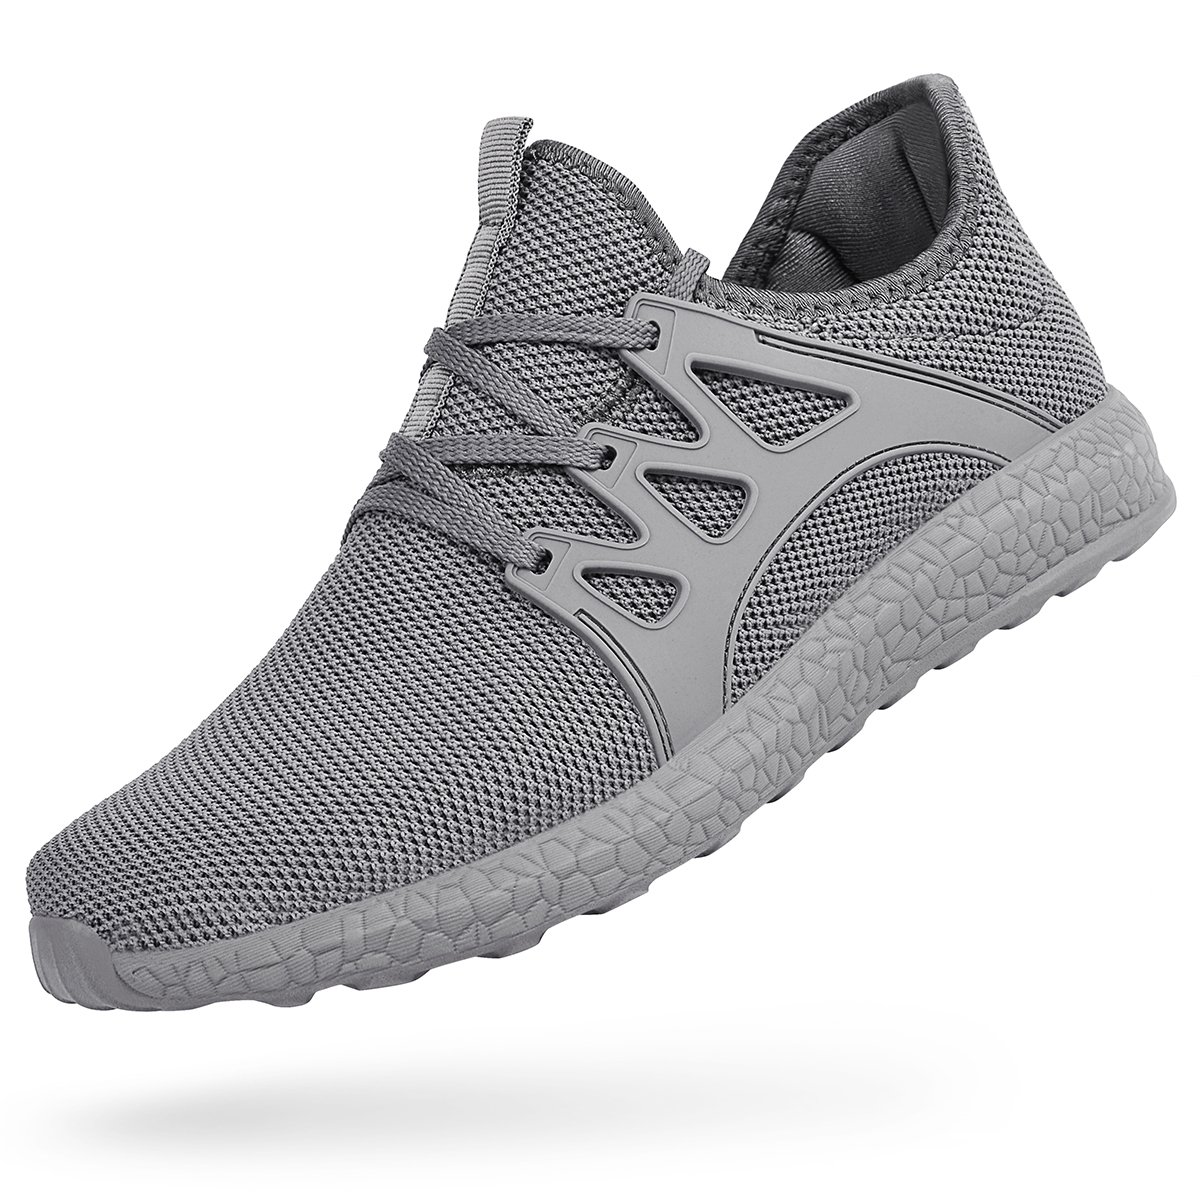 Feetmat Men's Sneakers Lightweight Breathable Mesh Gym Casual Shoes